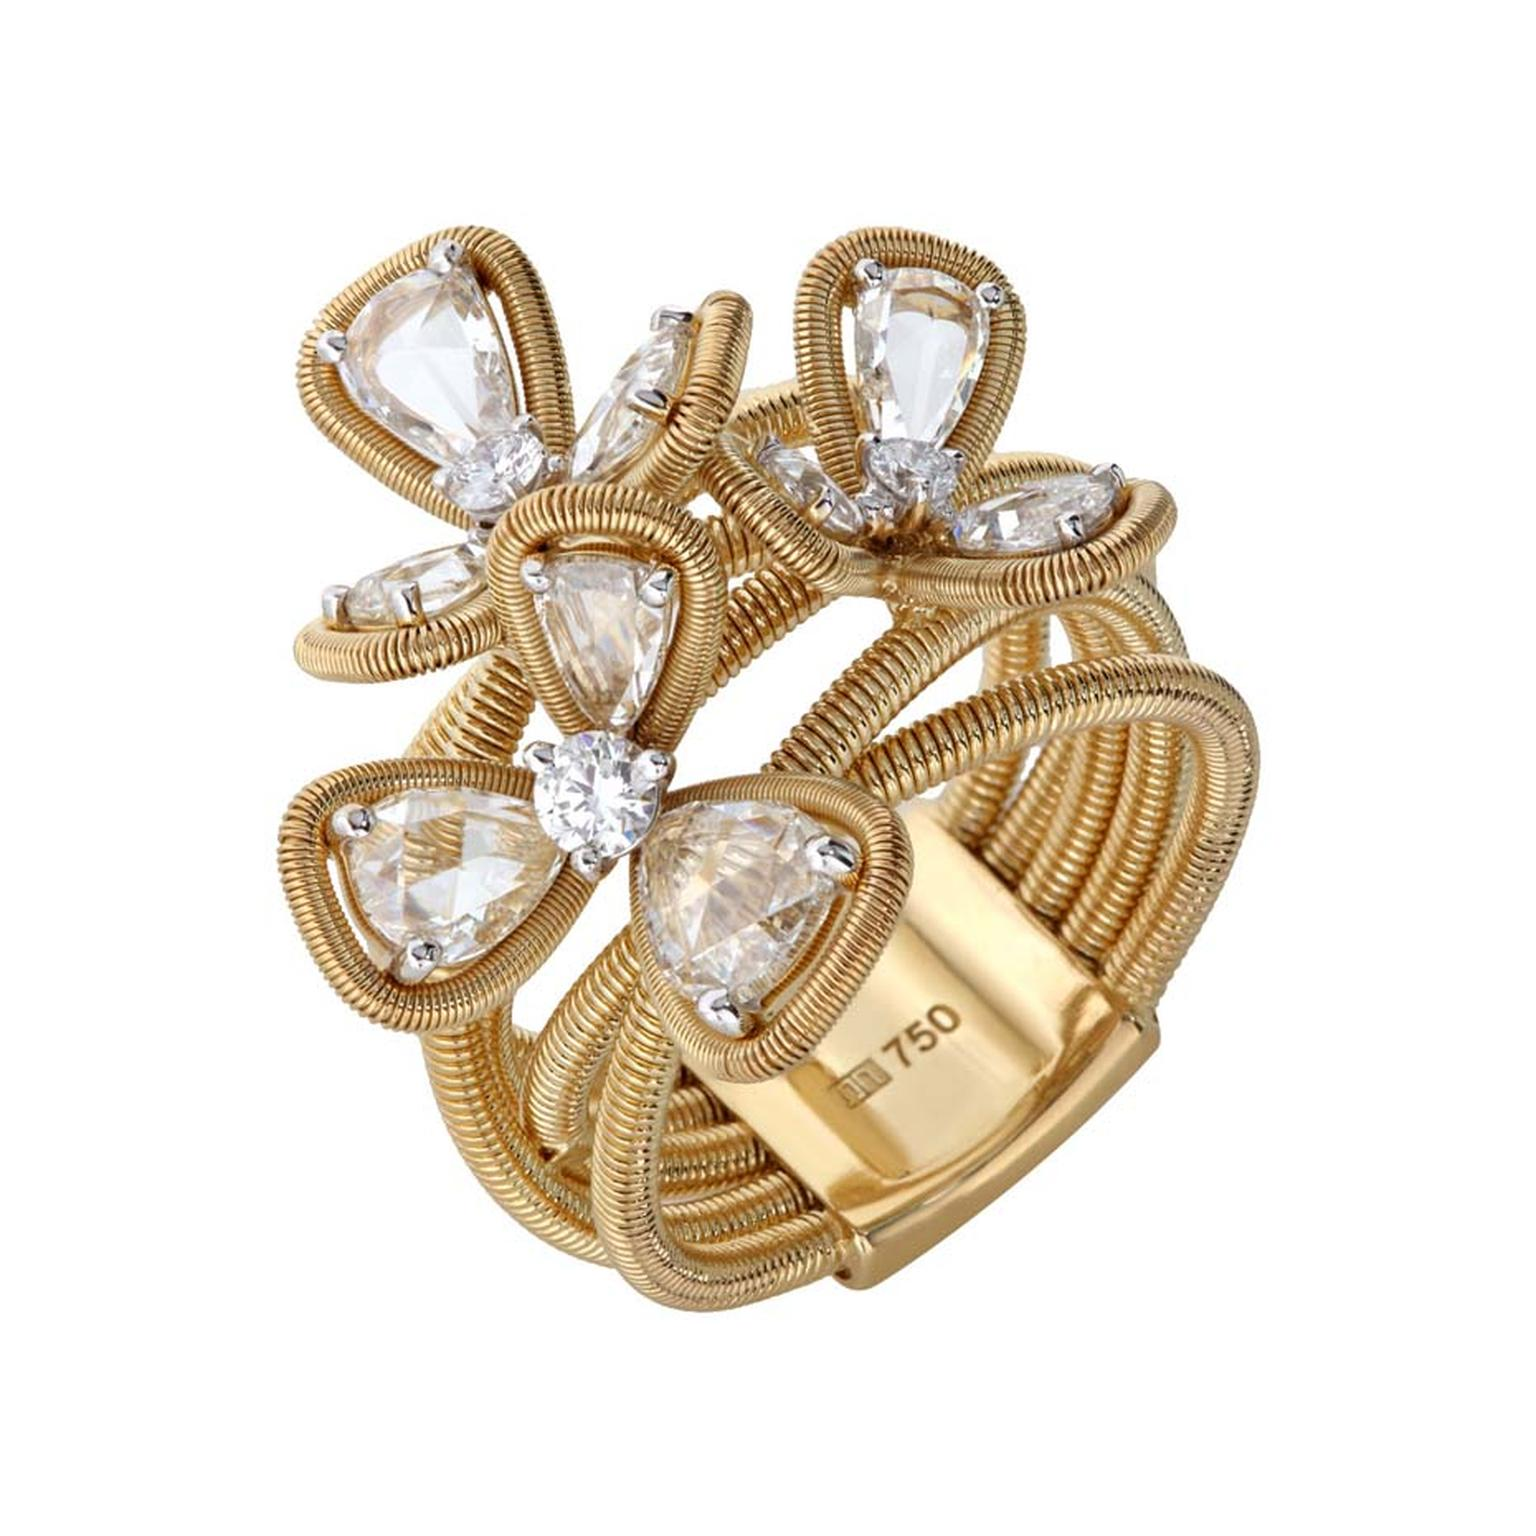 Nirav Modi Orchestra collection yellow gold and diamond ring